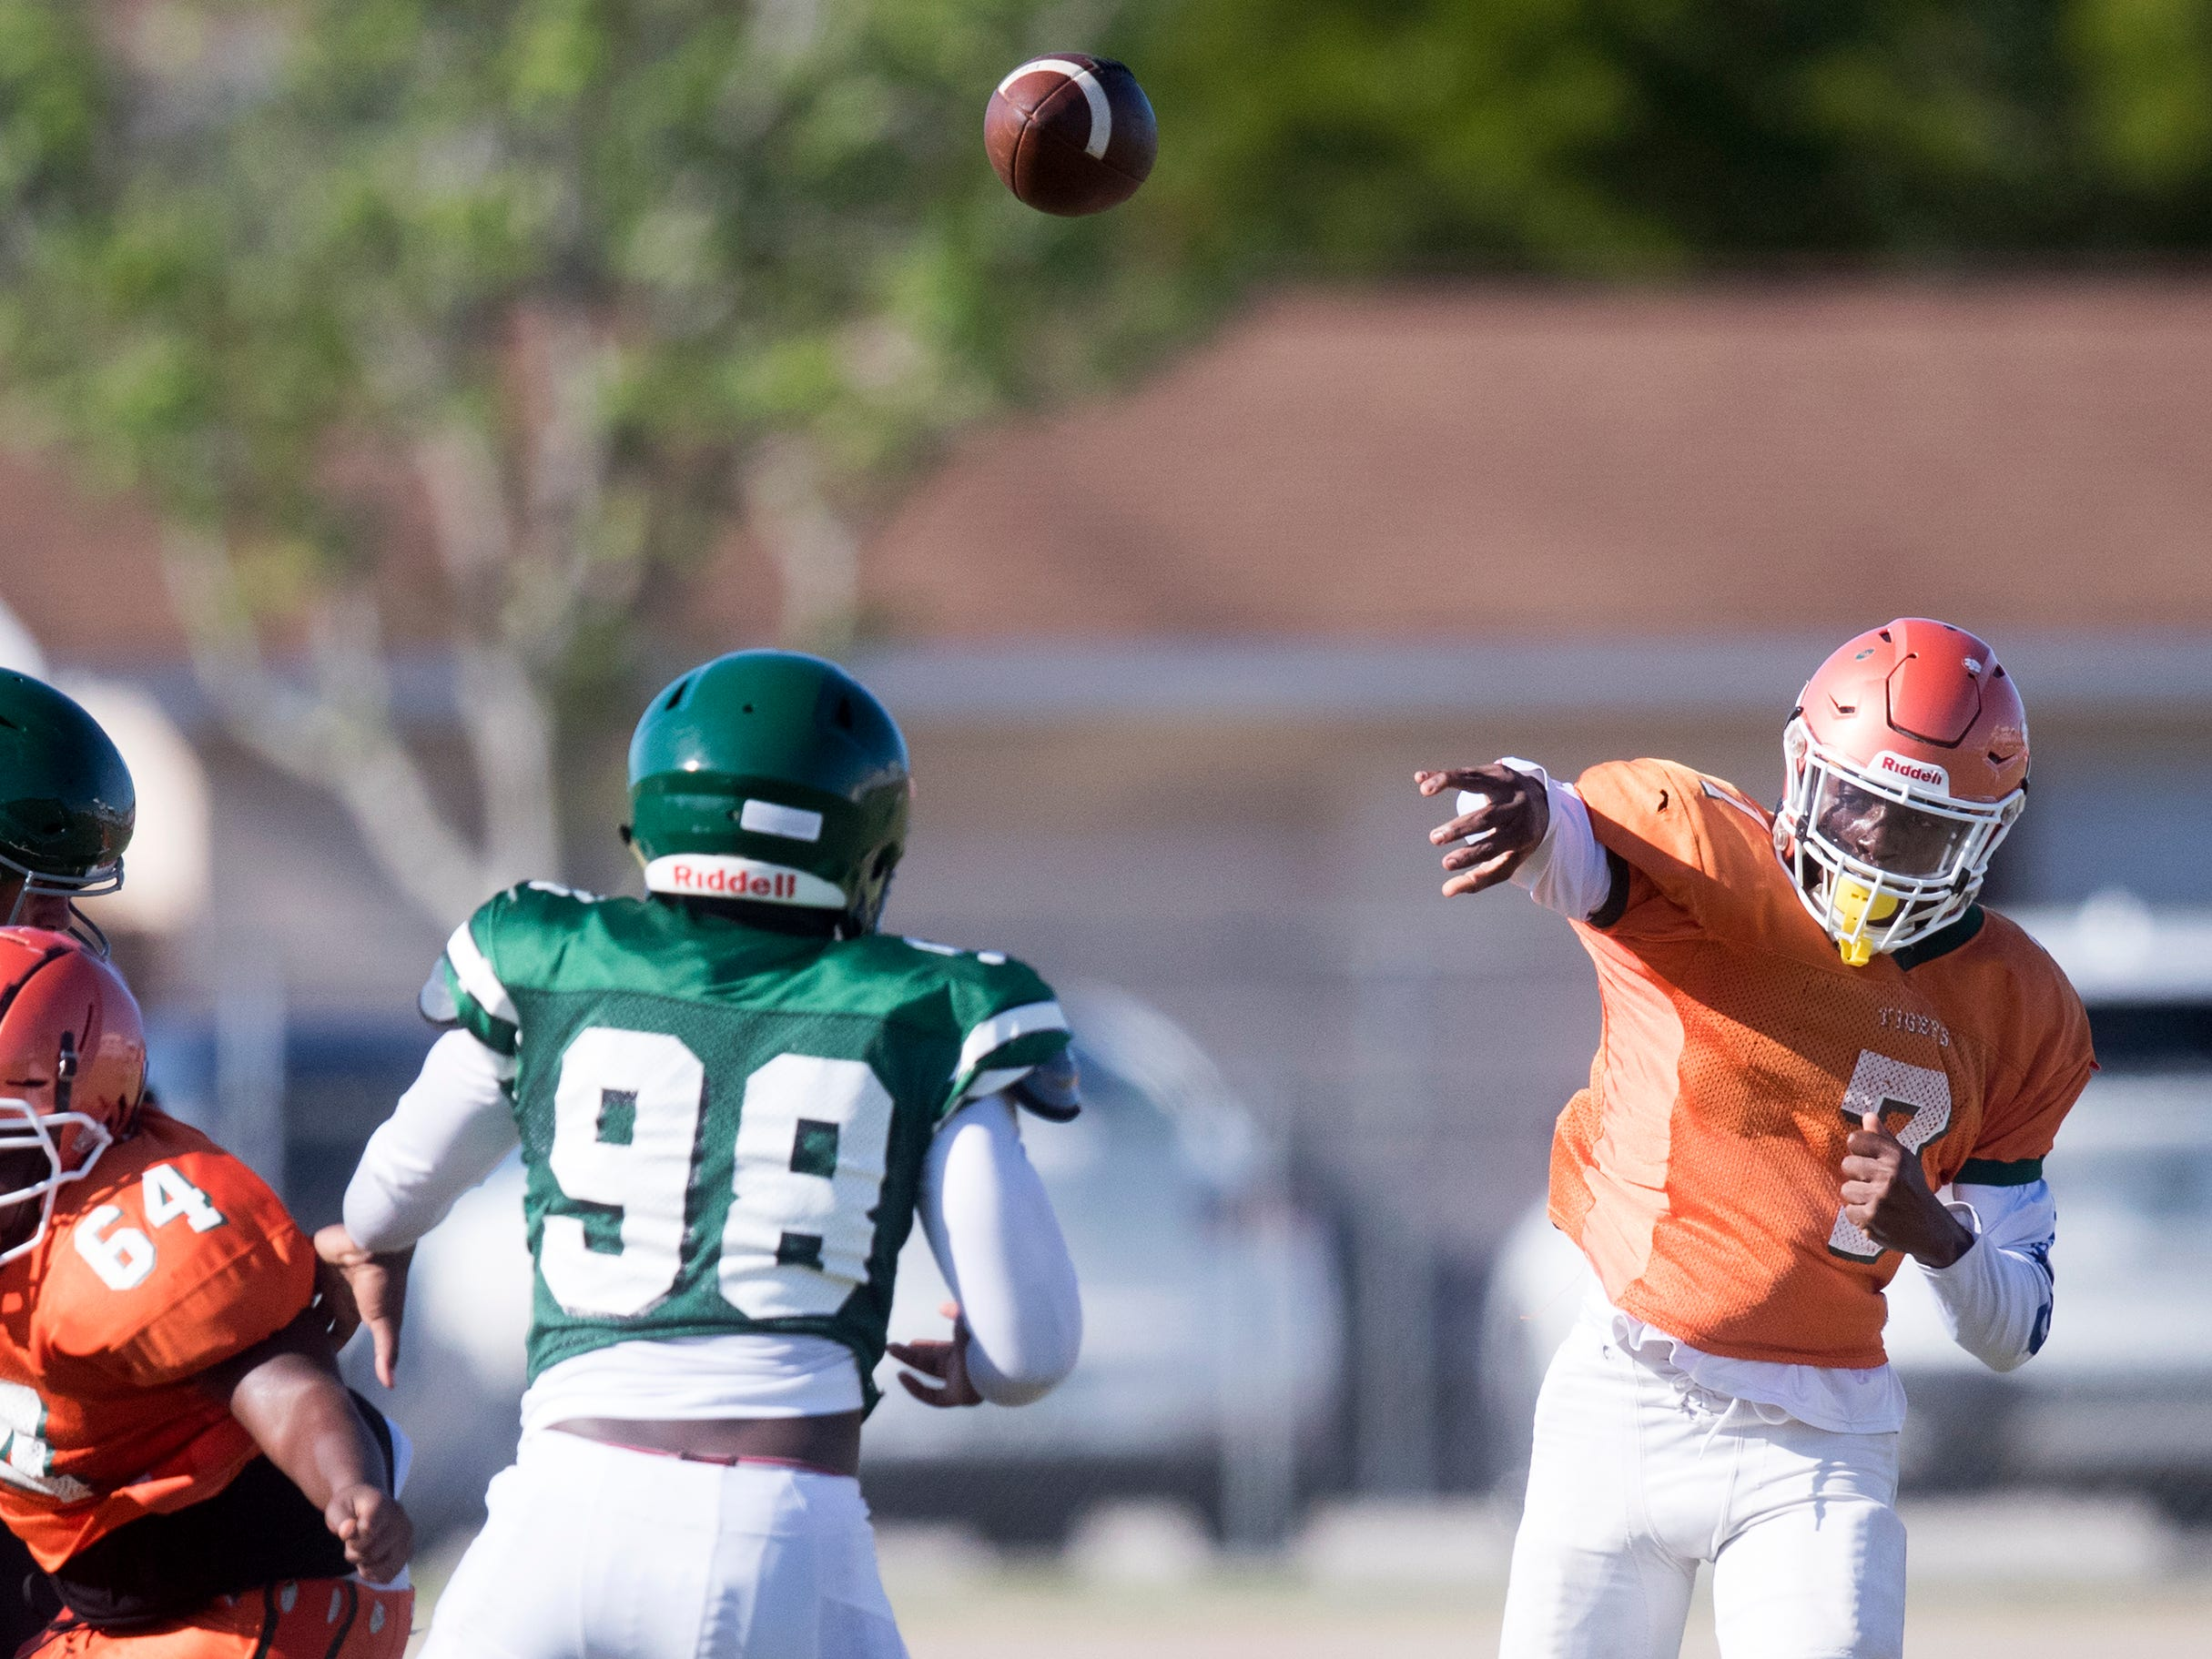 Dunbar High School's Jarques Riggins passes against Venice during a joint scrimmage on Saturday at North Fort Myers High School. Riverdale and North Fort Myers also played in the scrimmage.